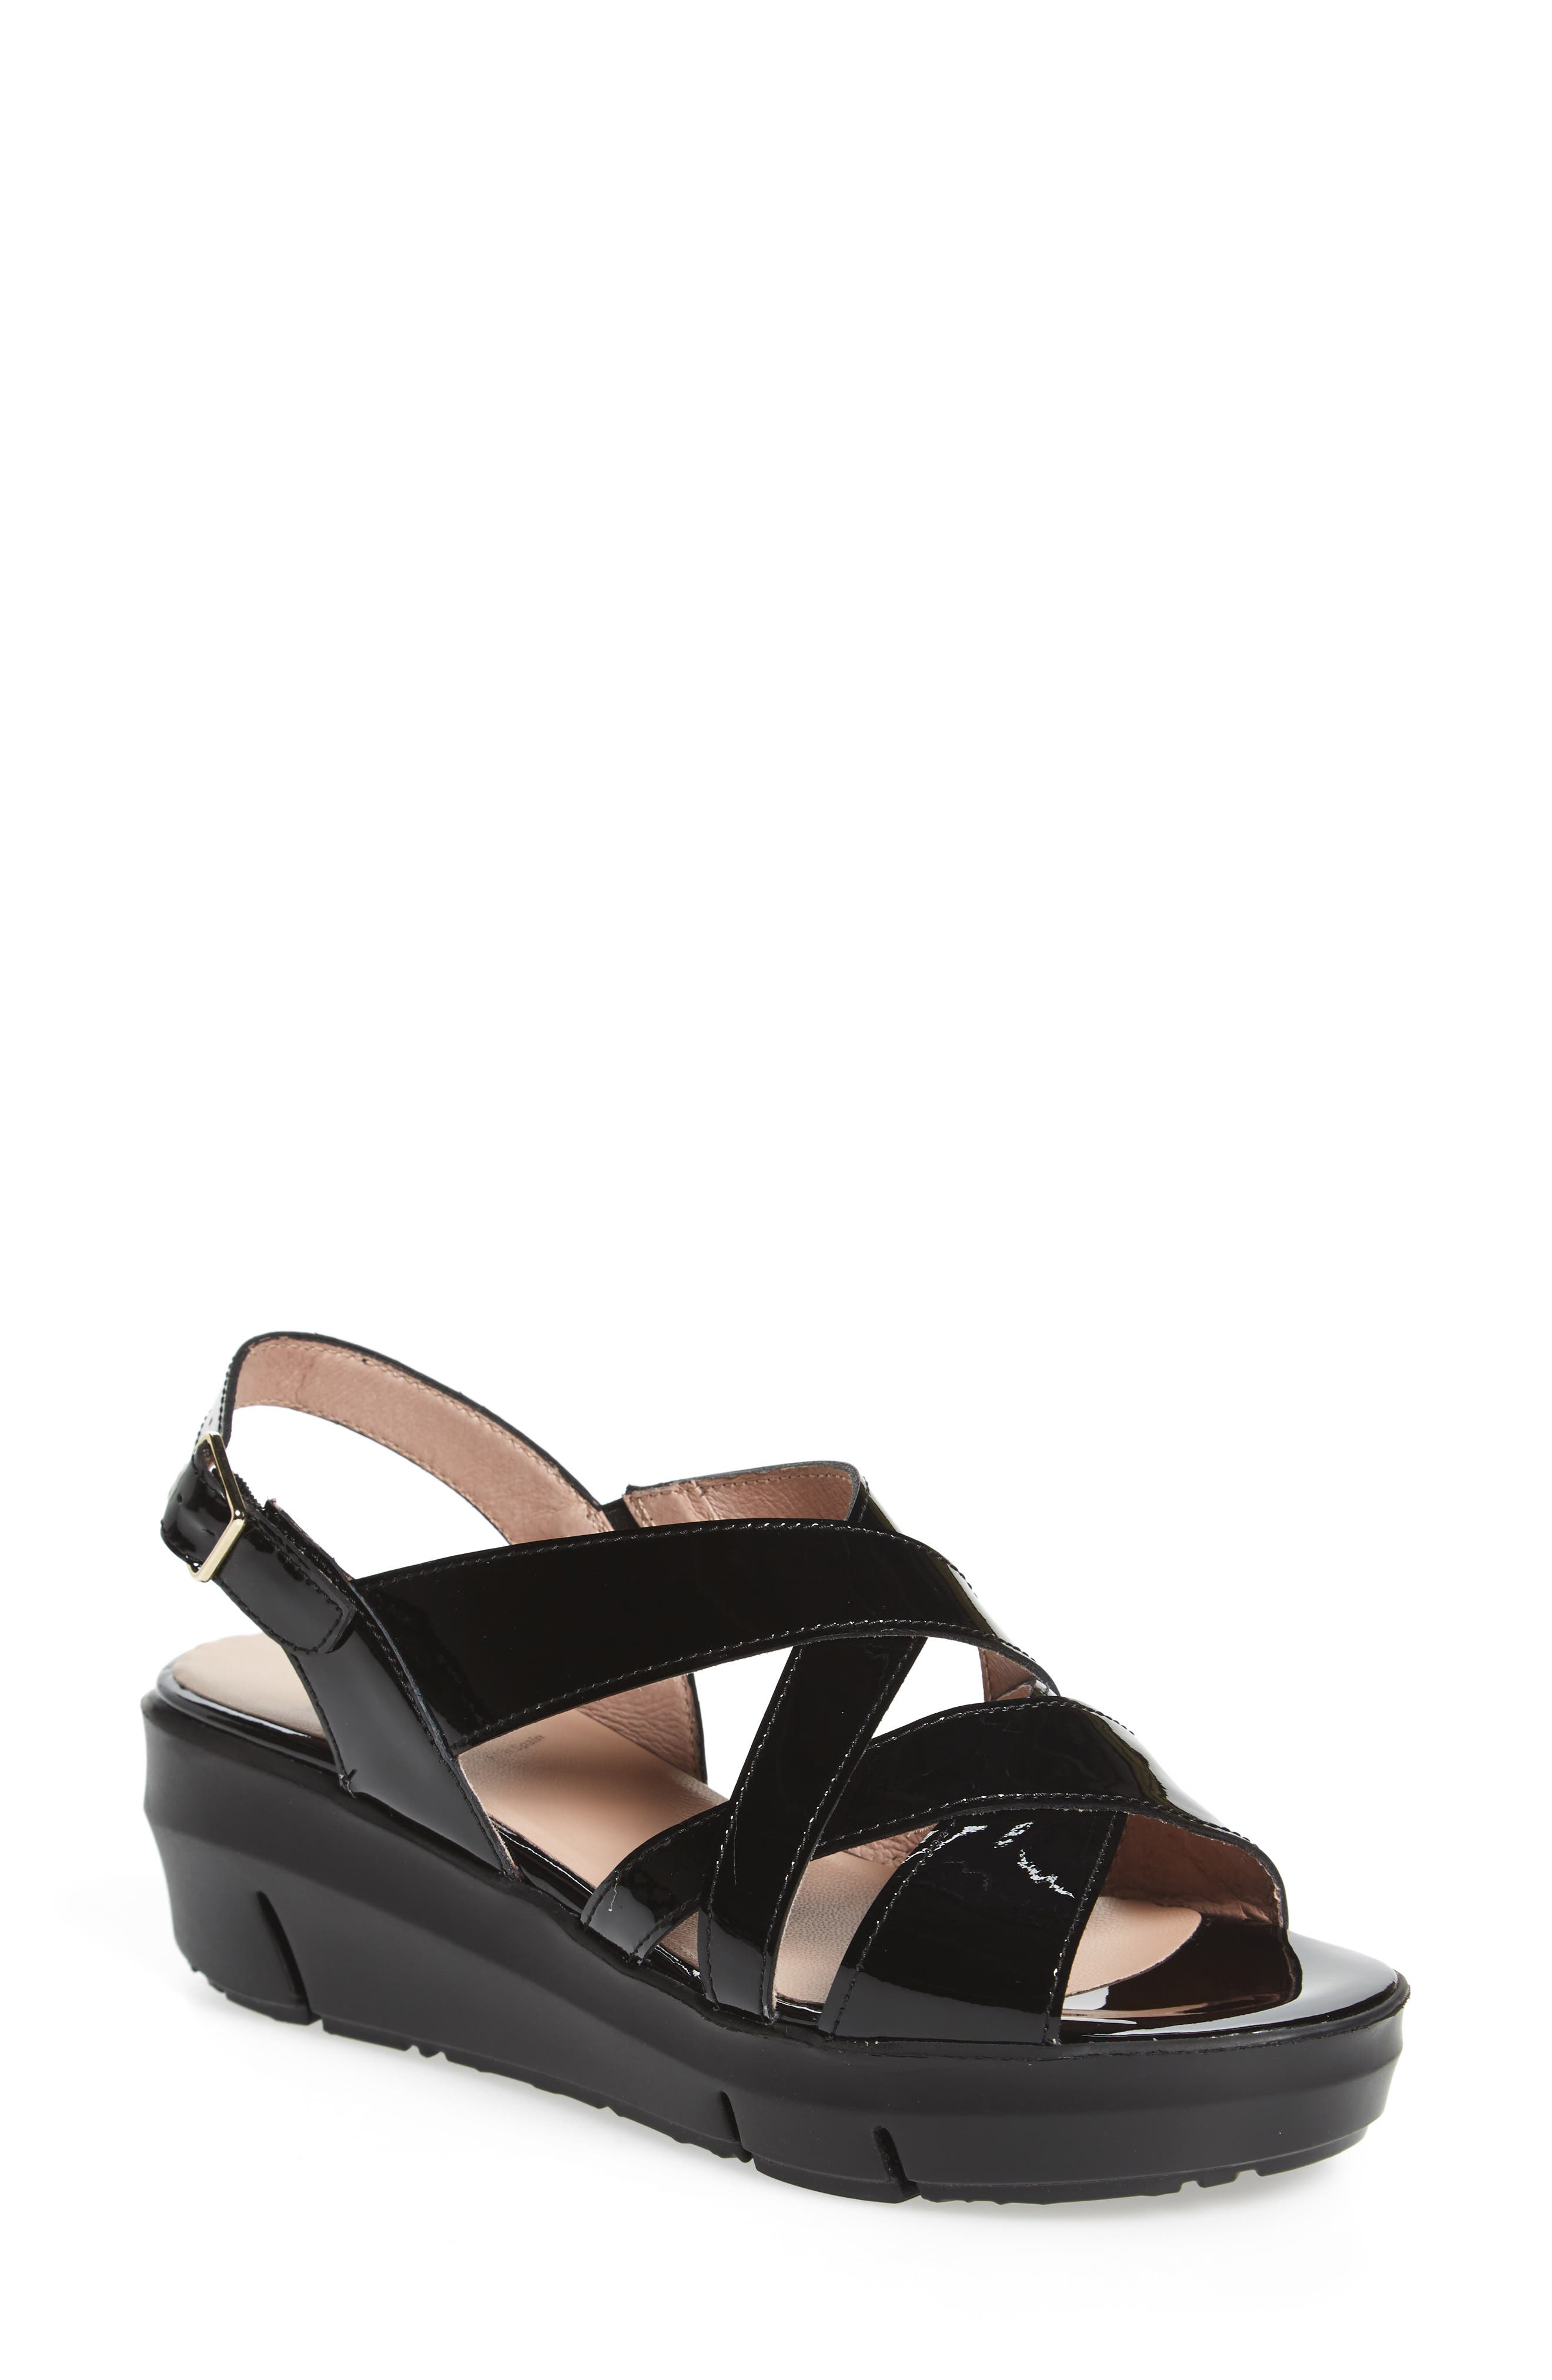 Wonders Platform Wedge Sandal - Black